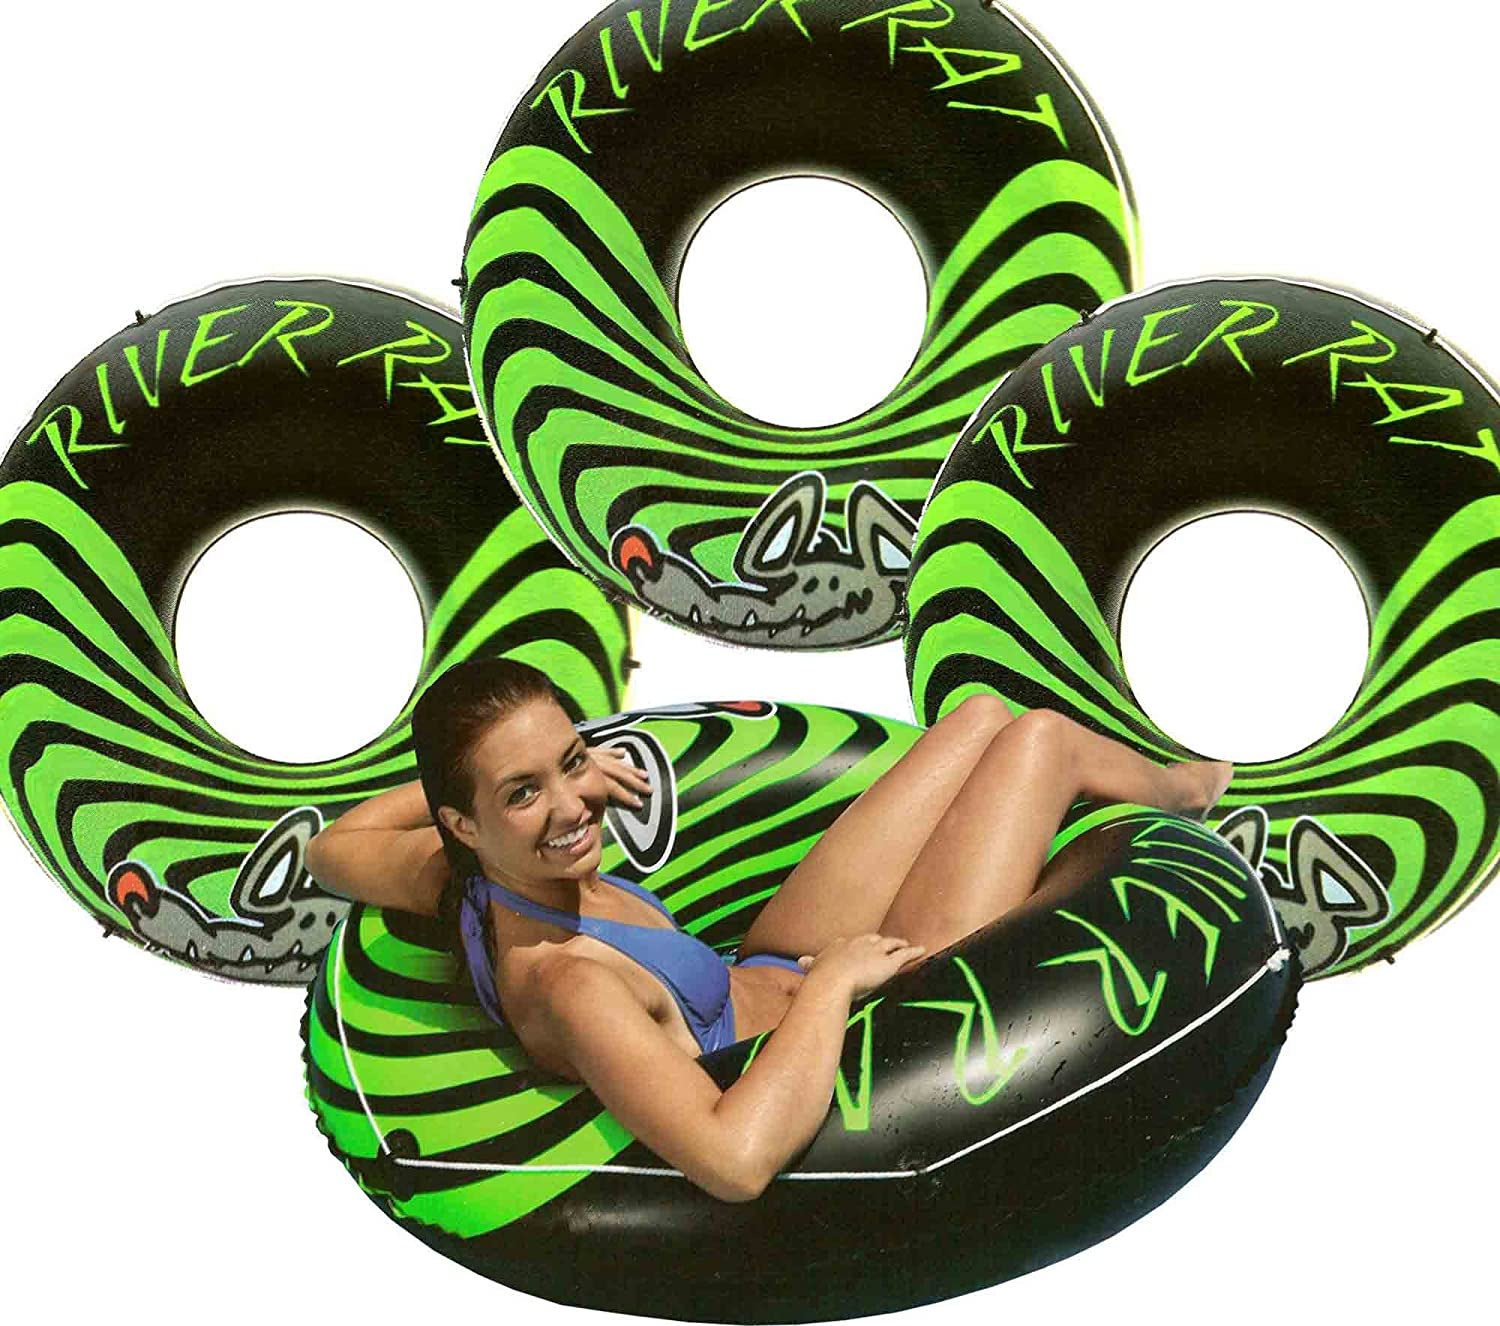 4-Pack Intex River Rat 48-Inch Inflatable Tubes For Lake/Pool/River | 4 x 68209E